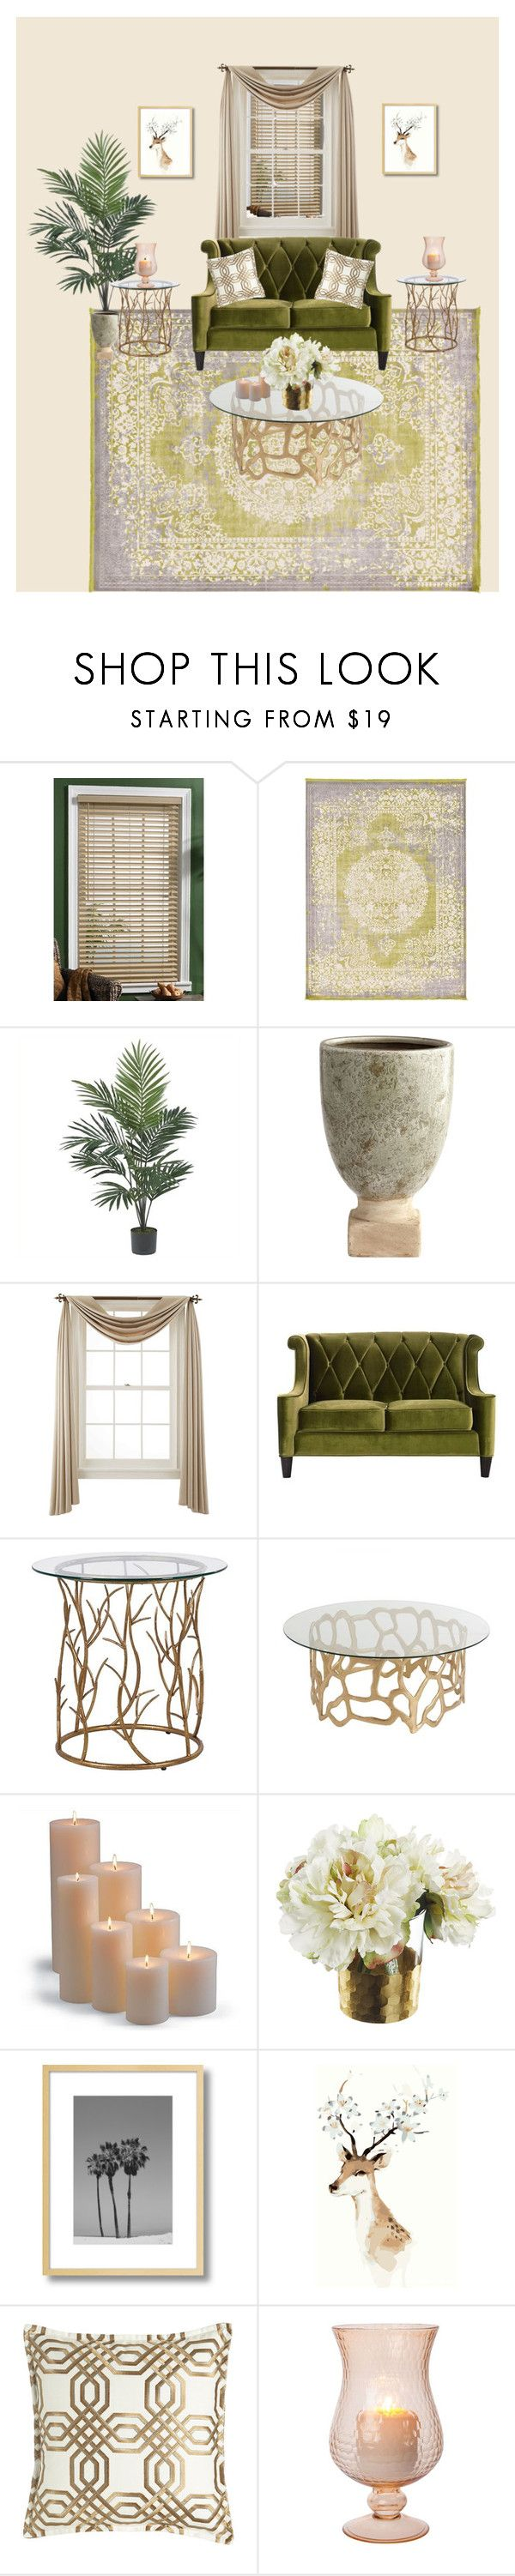 """""""Untitled #1"""" by asas-hady ❤ liked on Polyvore featuring interior, interiors, interior design, home, home decor, interior decorating, Nearly Natural, Liz Claiborne, Frontgate and Isabella Collection"""